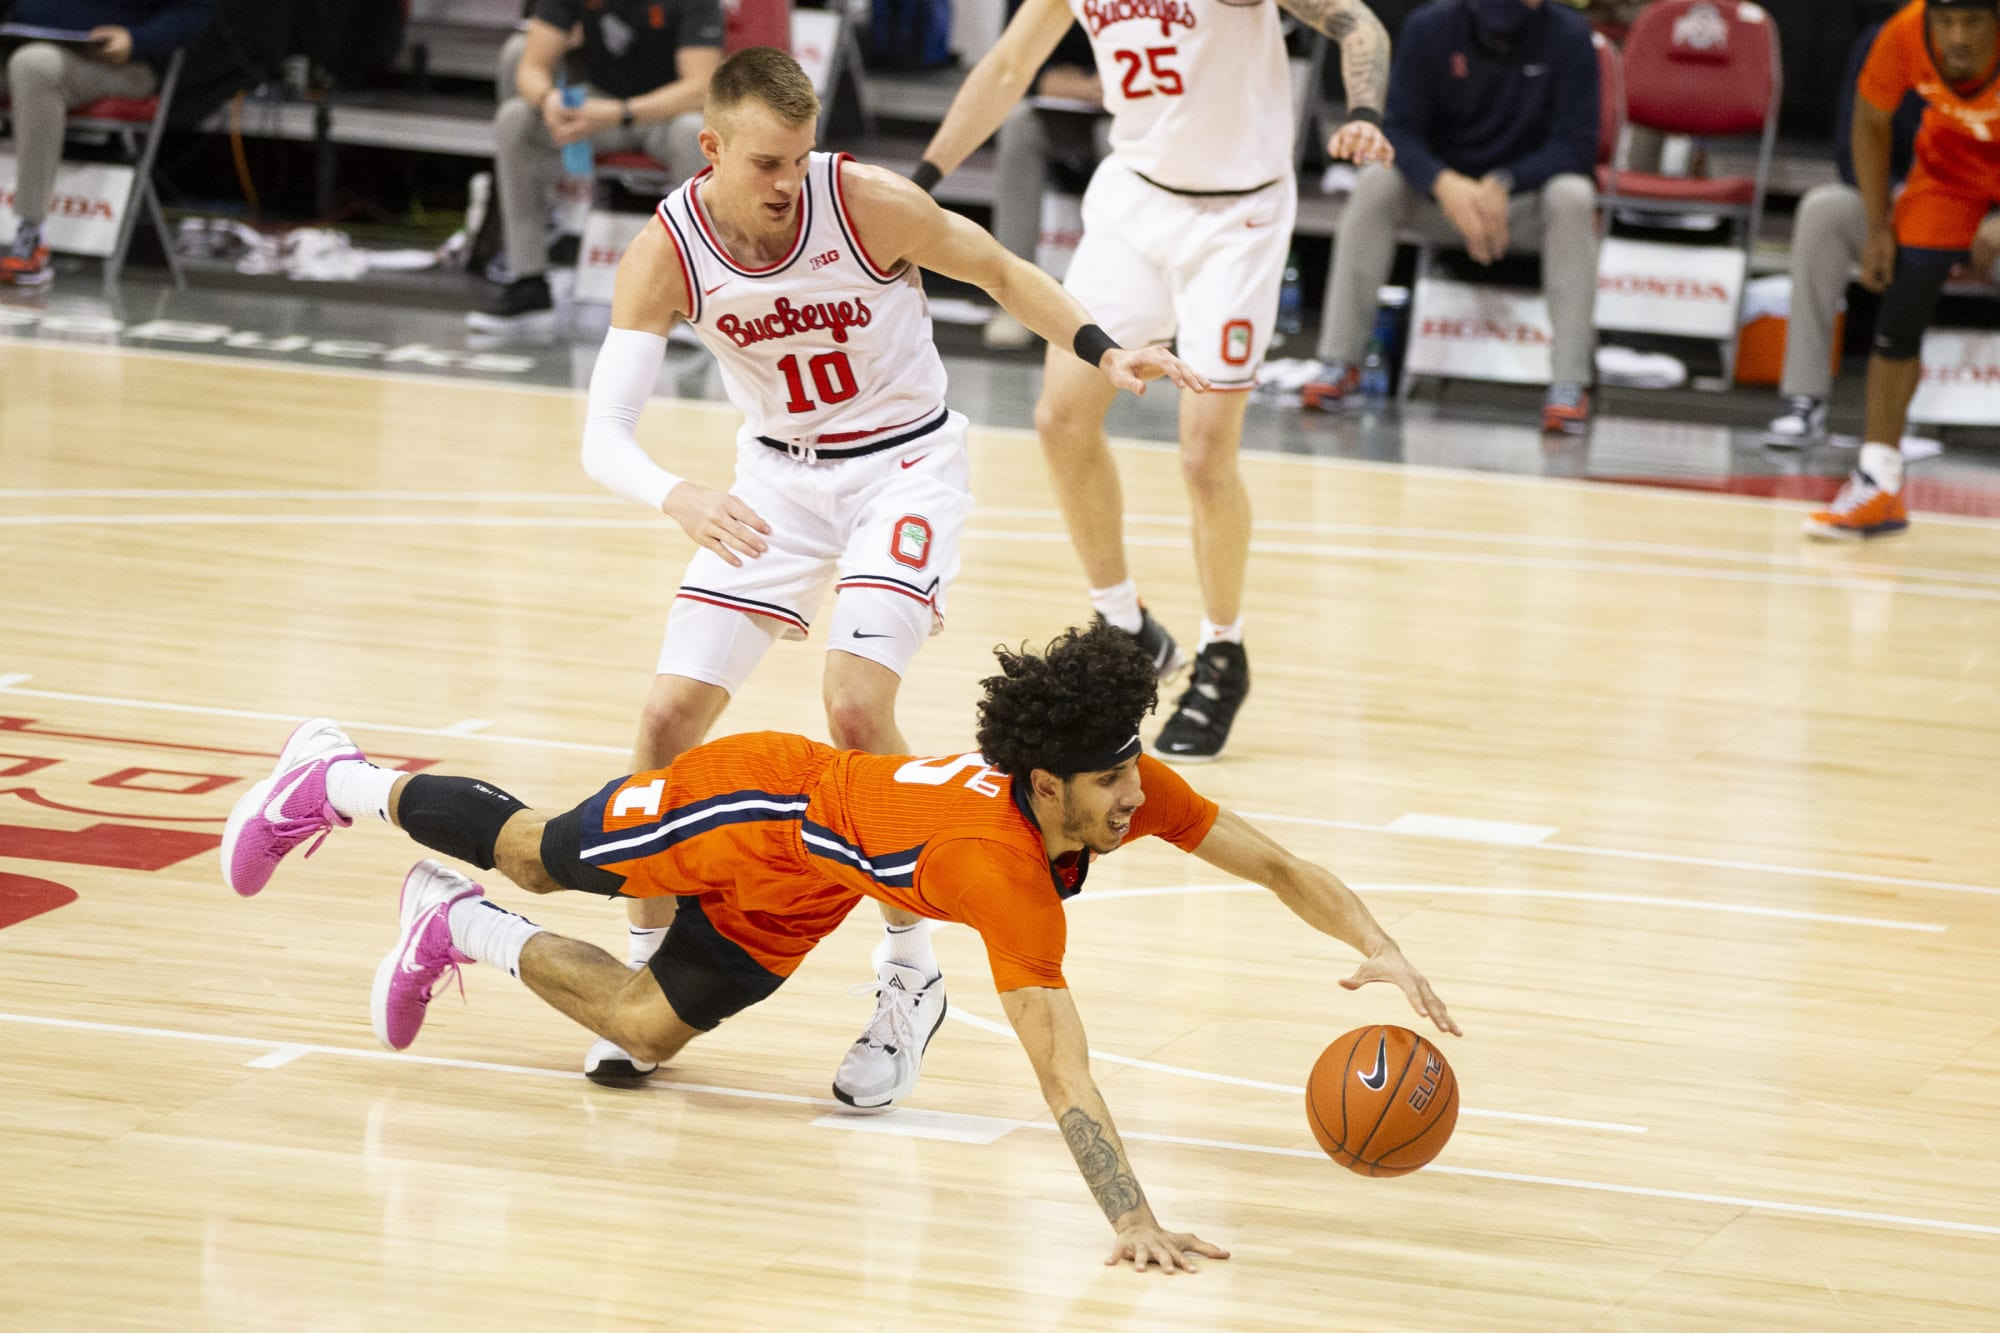 Illinois Basketball: 4 observations from the Illini win over Ohio State